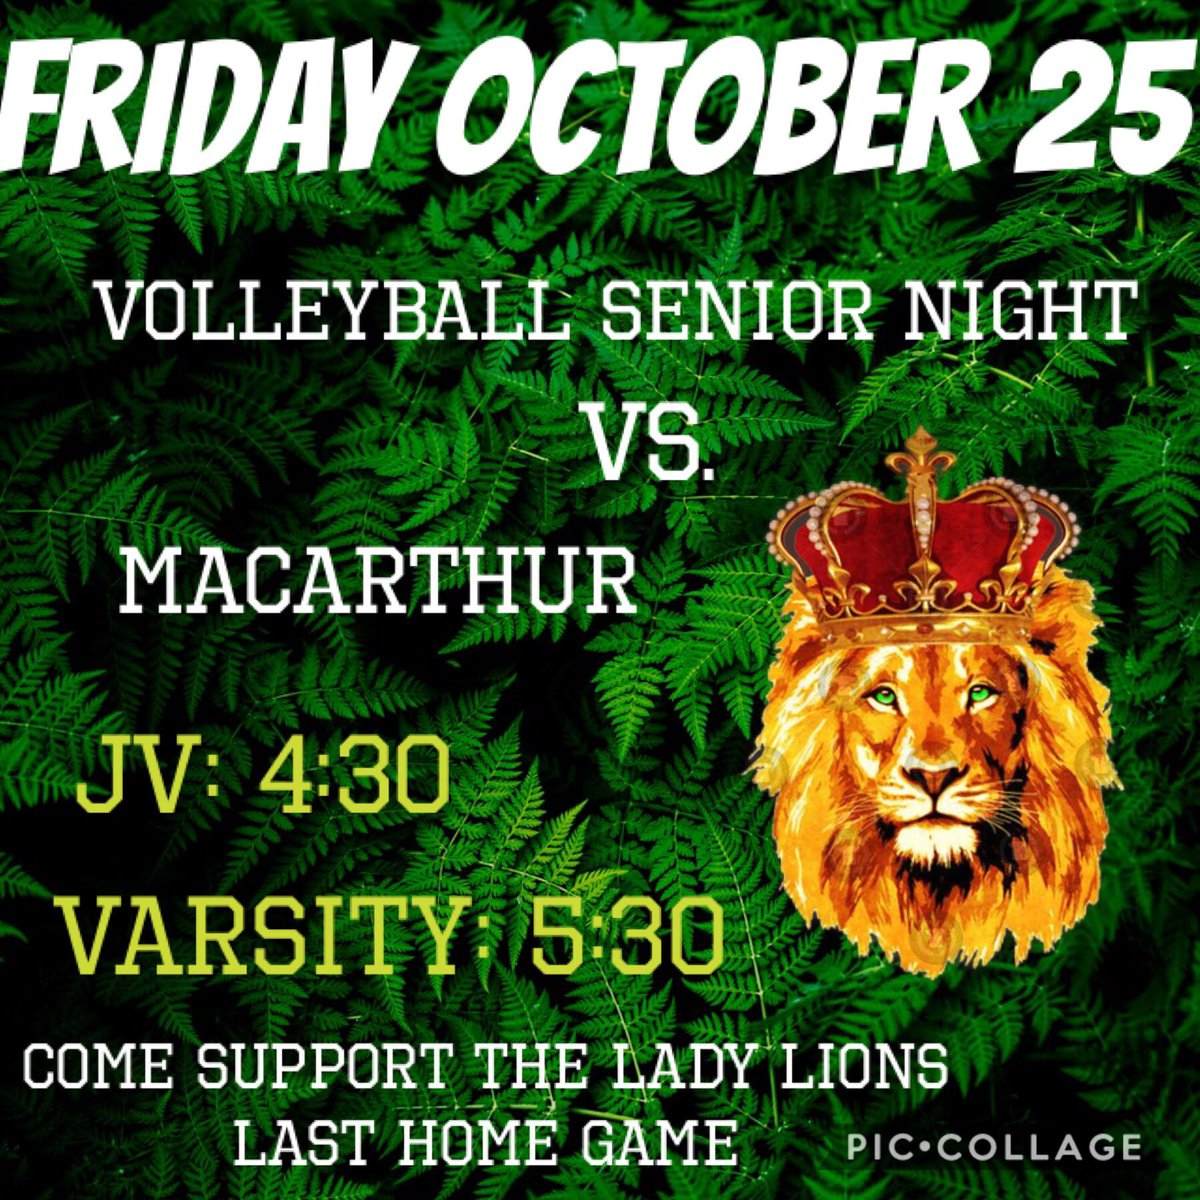 Let's all show love and support for our volleyball girls tonight and give the senior spirit for senior night tonight 💚🏐 #classof2020 #wearespring #mbybob https://t.co/Swi0rXFhNk